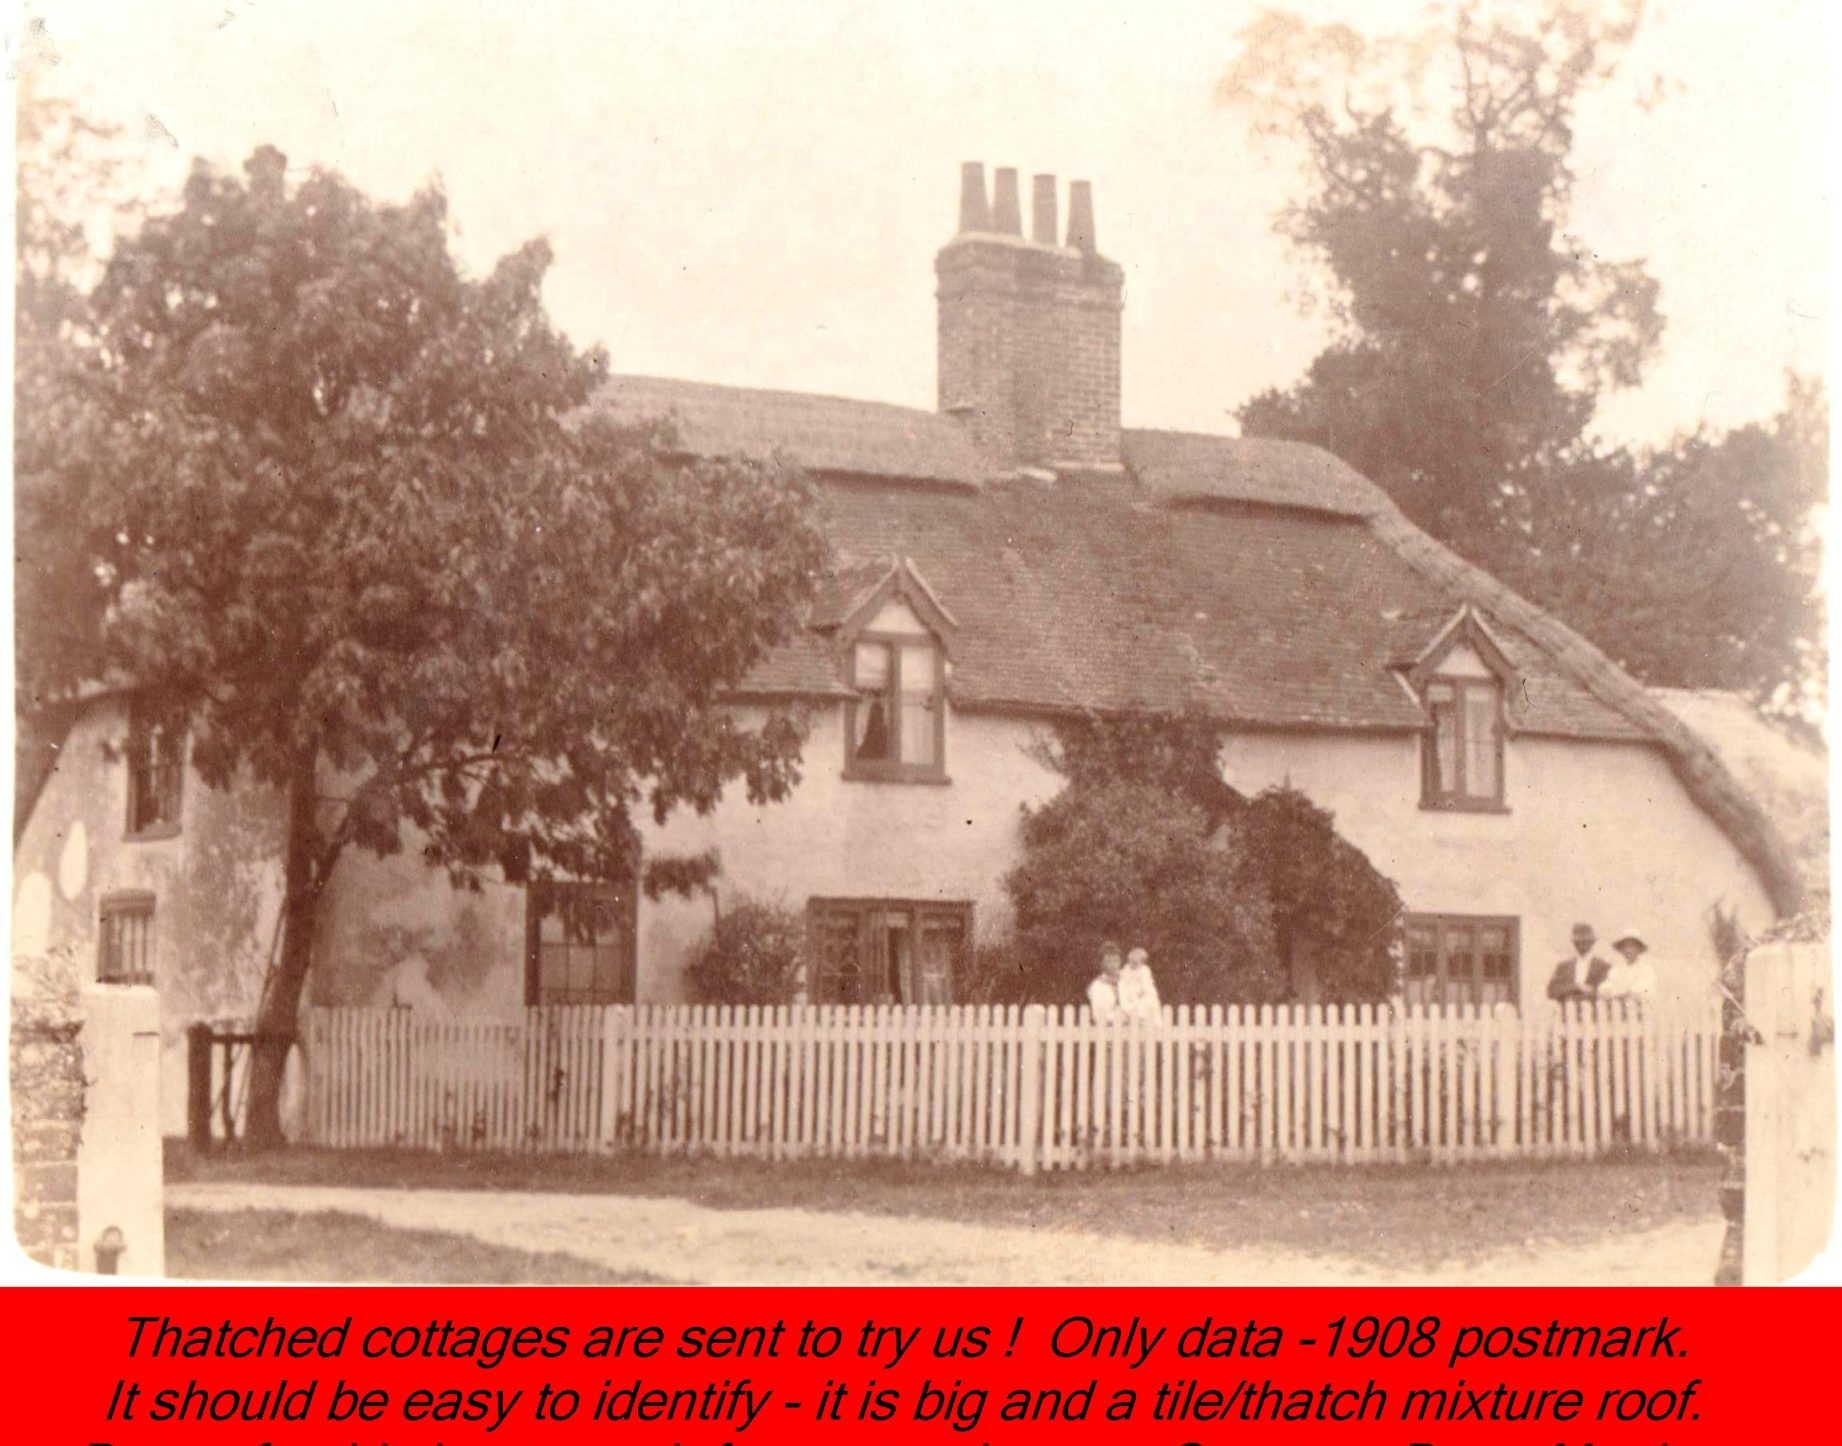 WESTBOURNE HISTORY PHOTO, THATCH, COTTAGE, MYSTERY, 1908